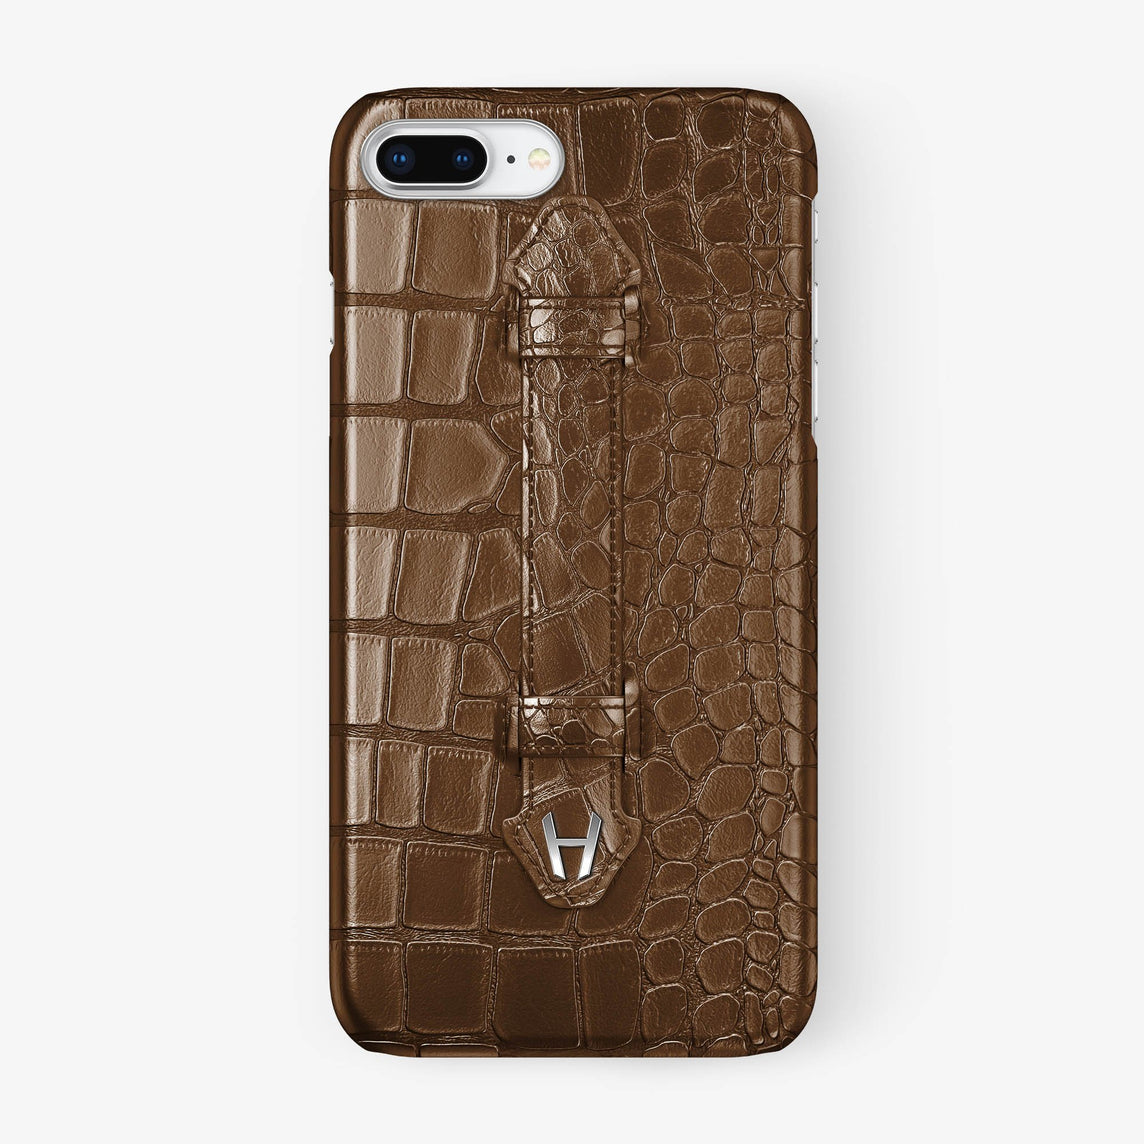 Alligator Finger Case iPhone 7/8 Plus | Brown - Stainless Steel